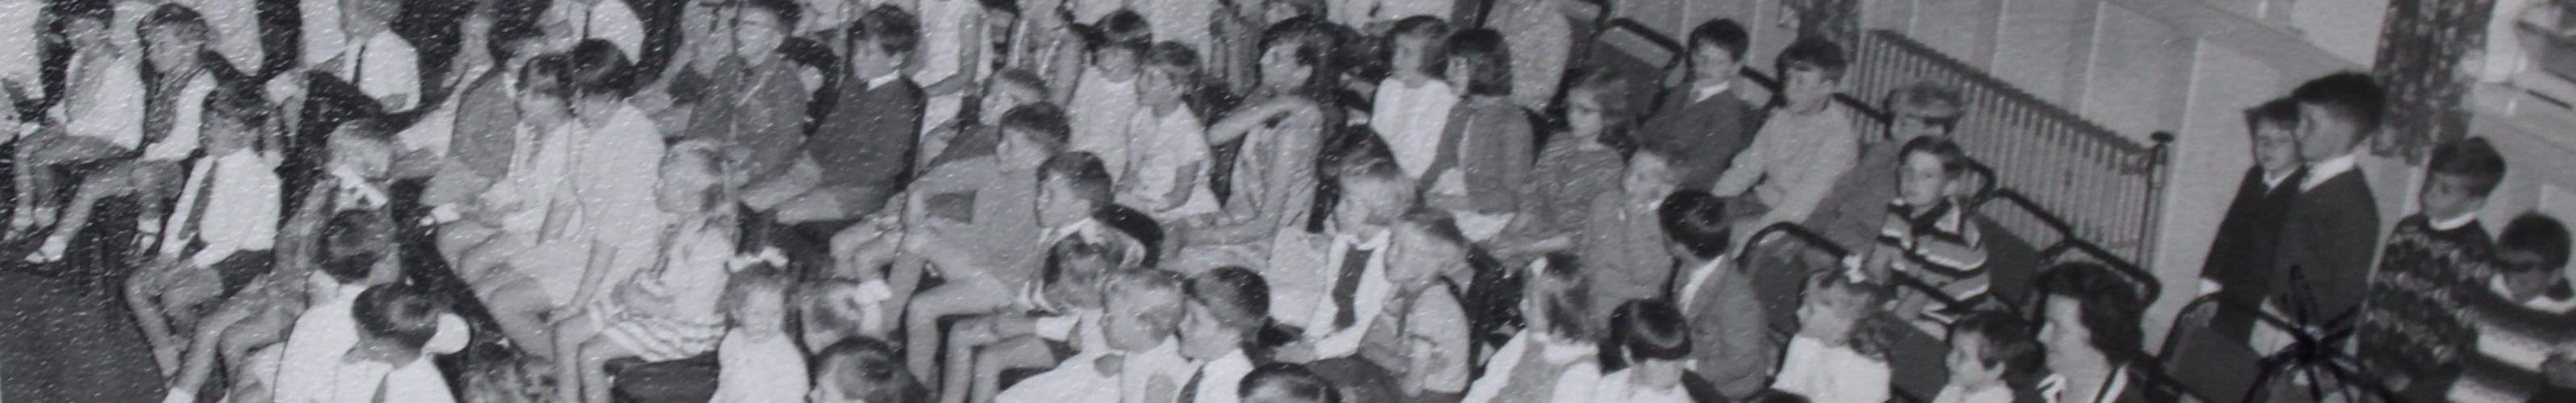 A black and white photo of All Saints Sunday School in 1967